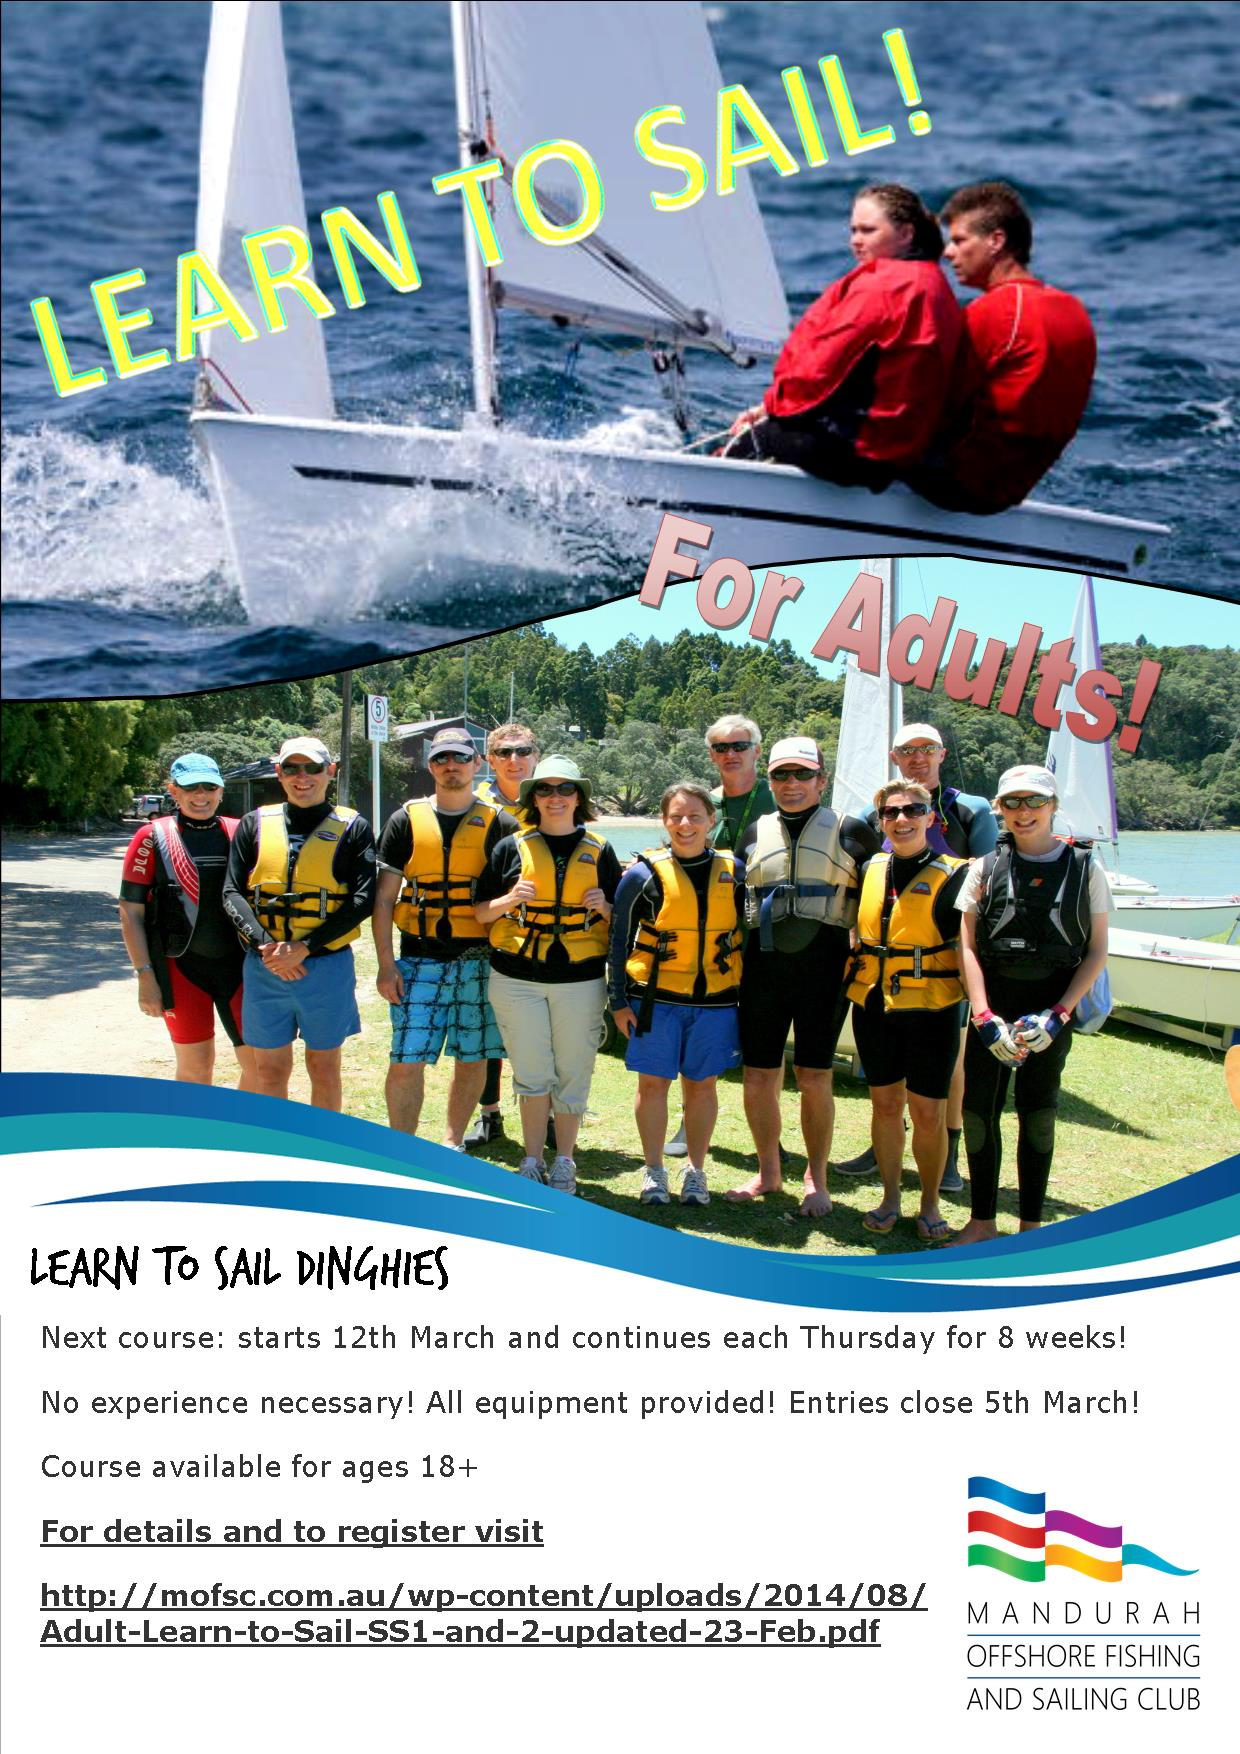 Learn to Sail Dinghies